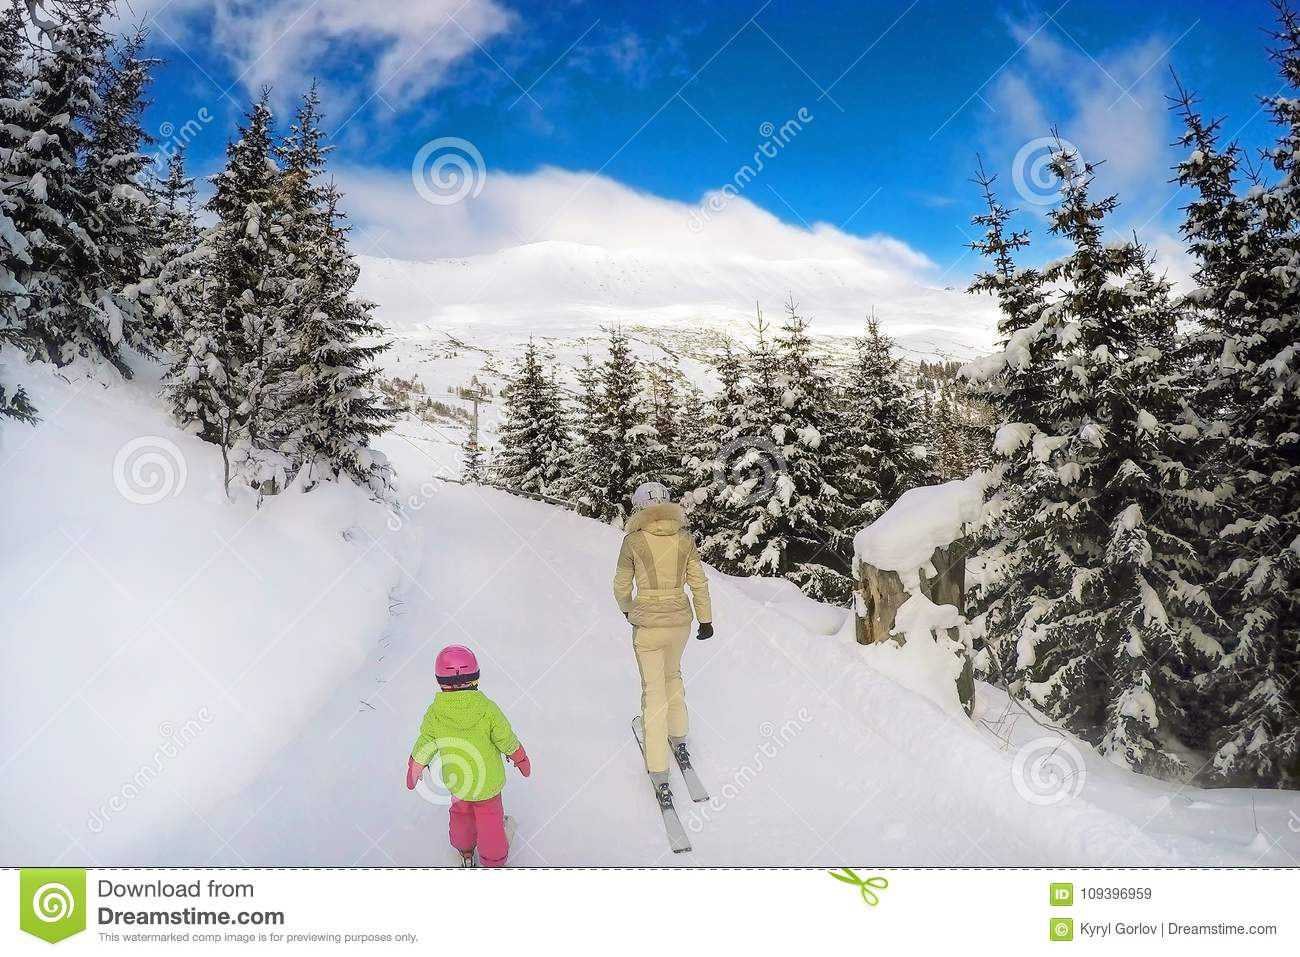 Mother and daughter skiing in forest. Back view. Bright sunny winter day. End of winter vacation concept. Closure of winter sport